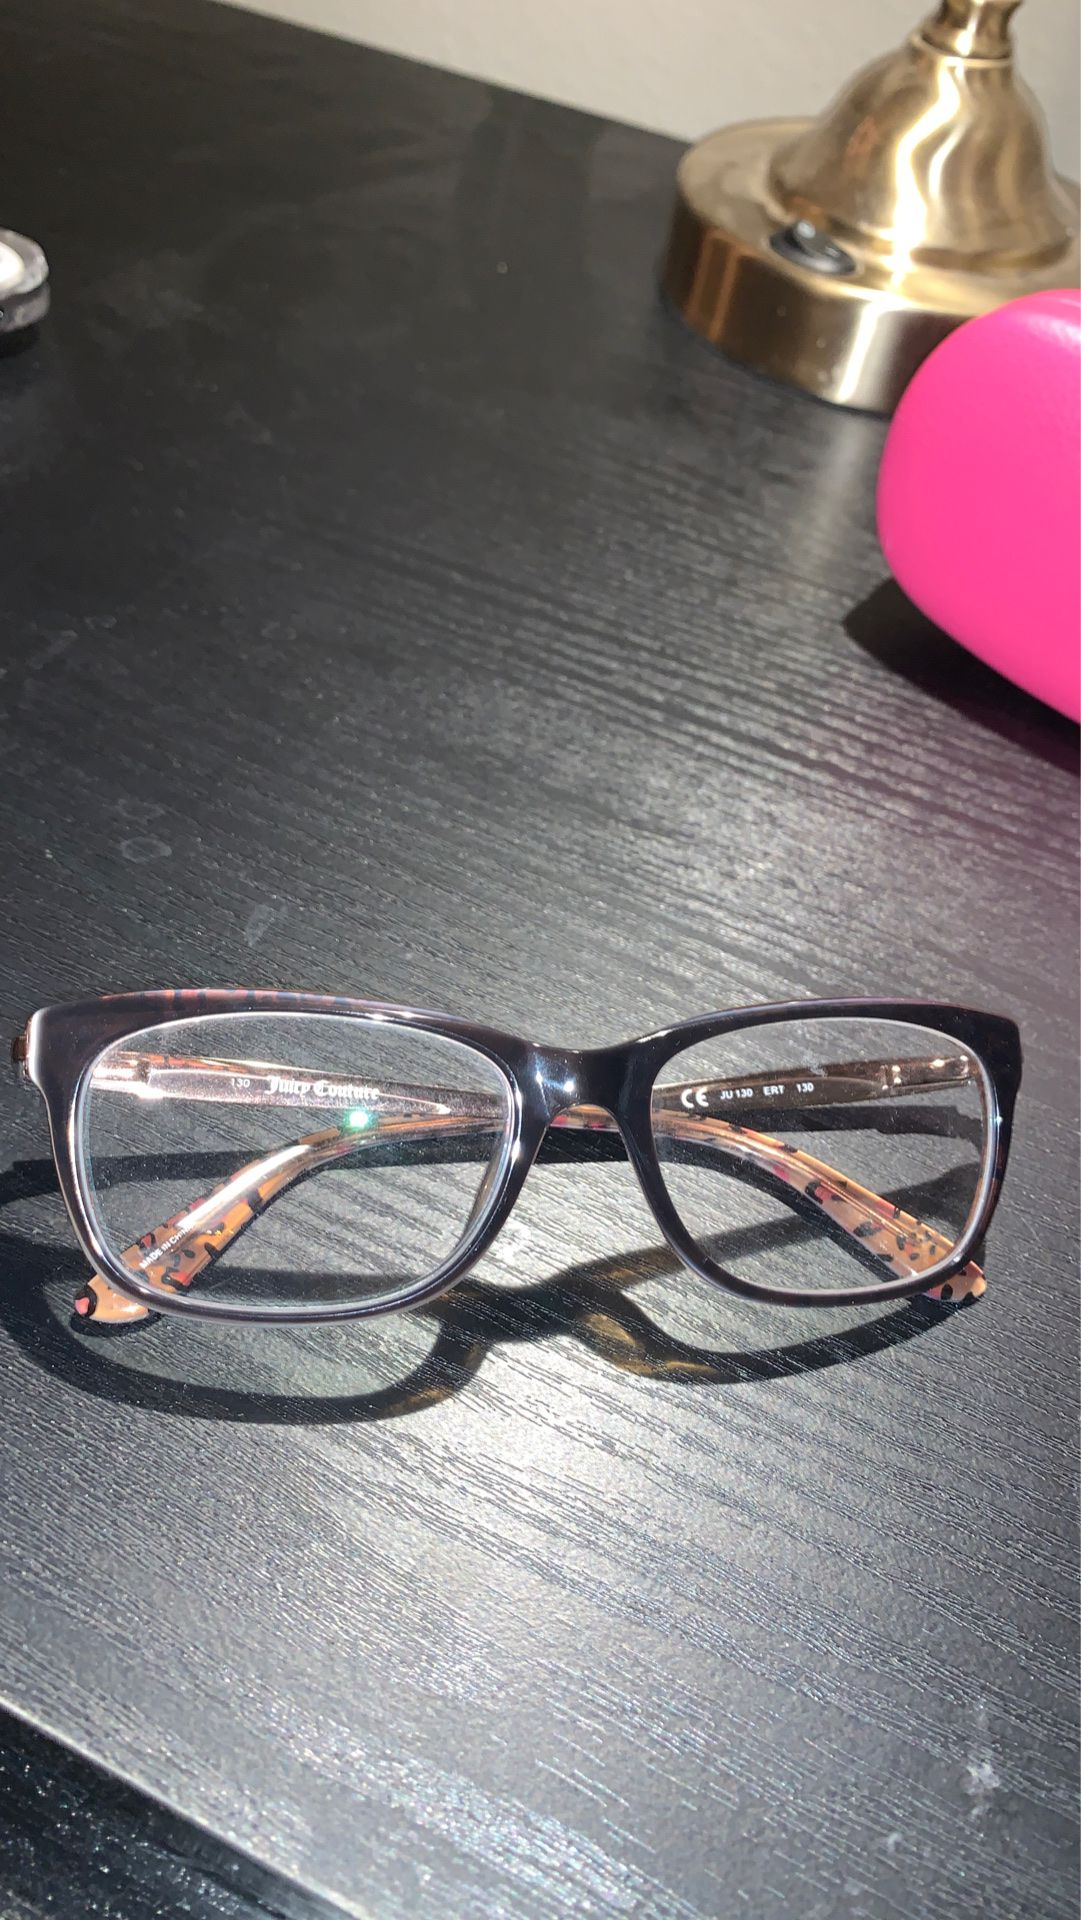 children's juicy couture reading glasses